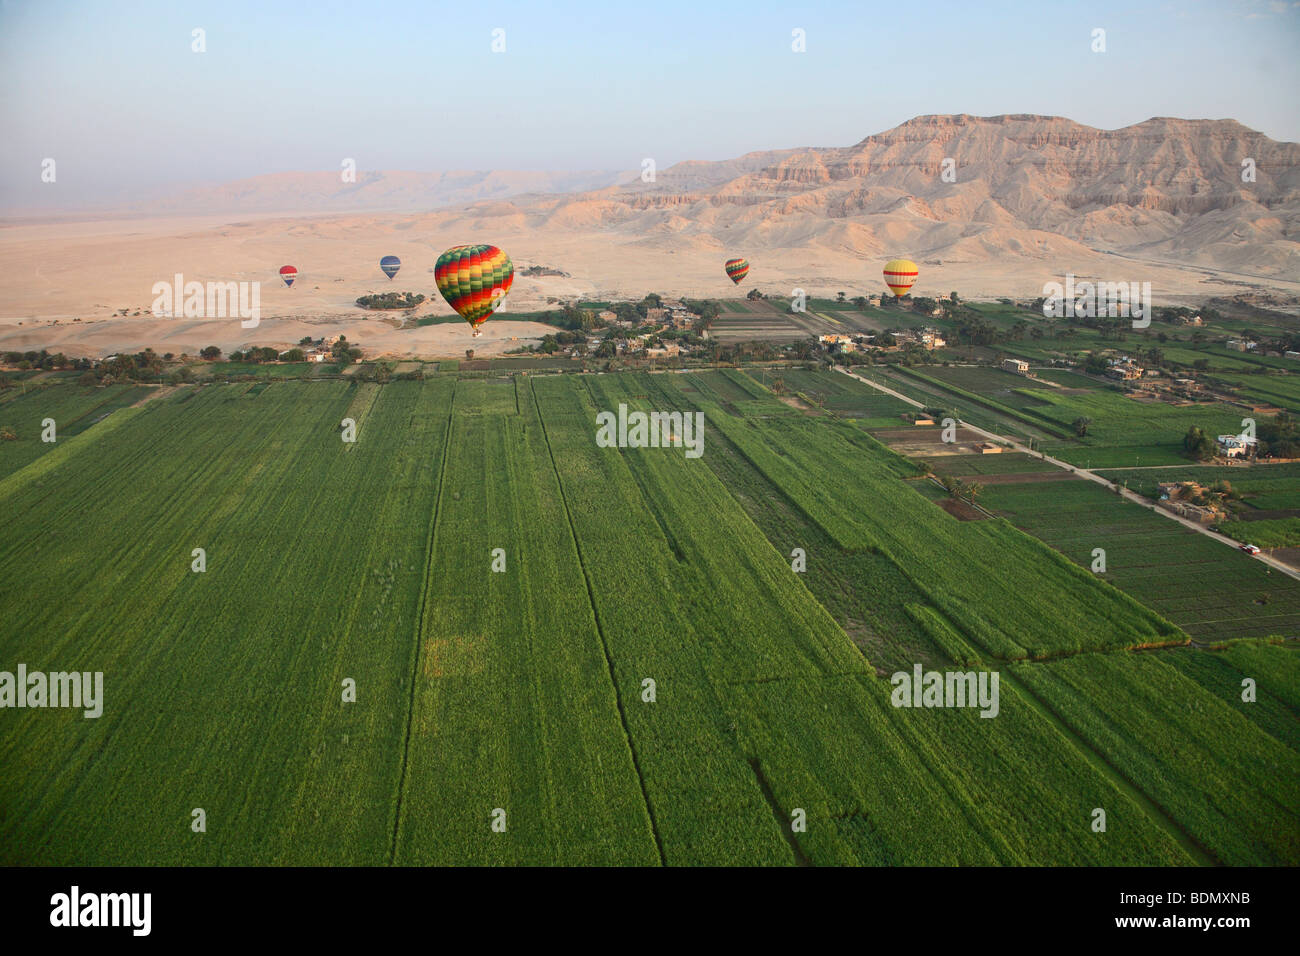 River Nile Agricultural Irrigation Stock Photos Amp River Nile Agricultural Irrigation Stock